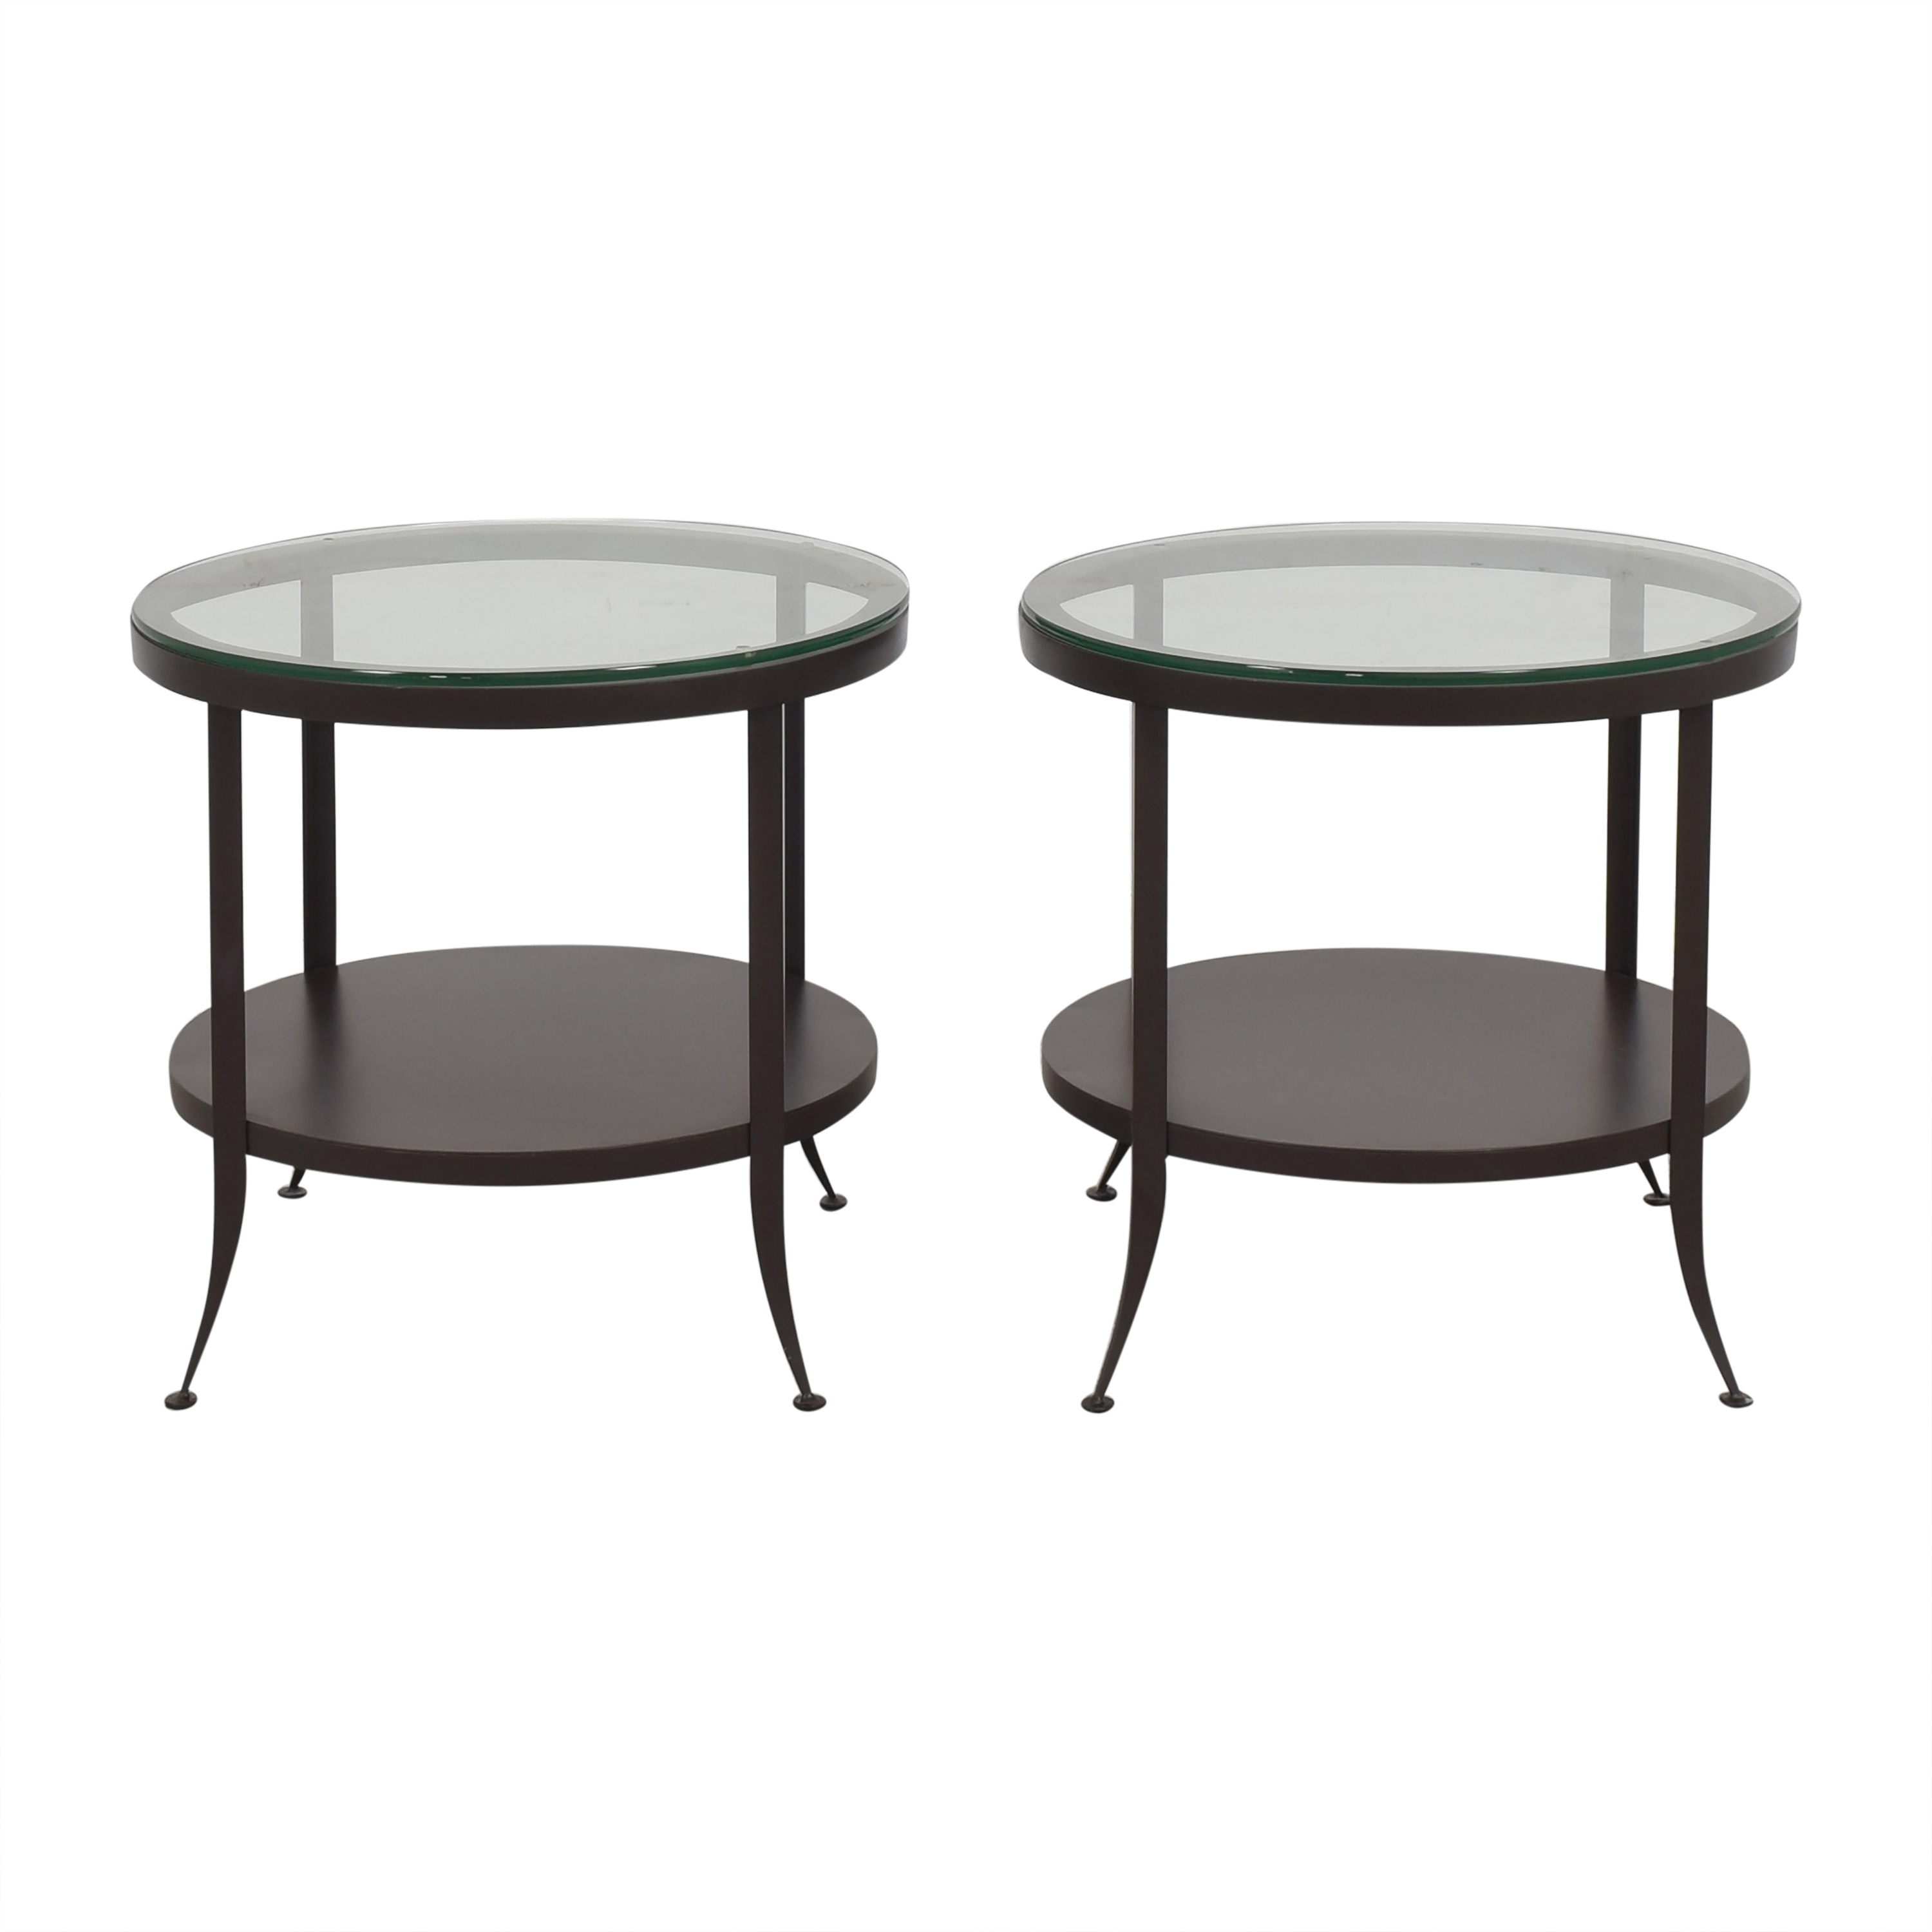 Crate & Barrel Crate  & Barrel Round Side Tables for sale